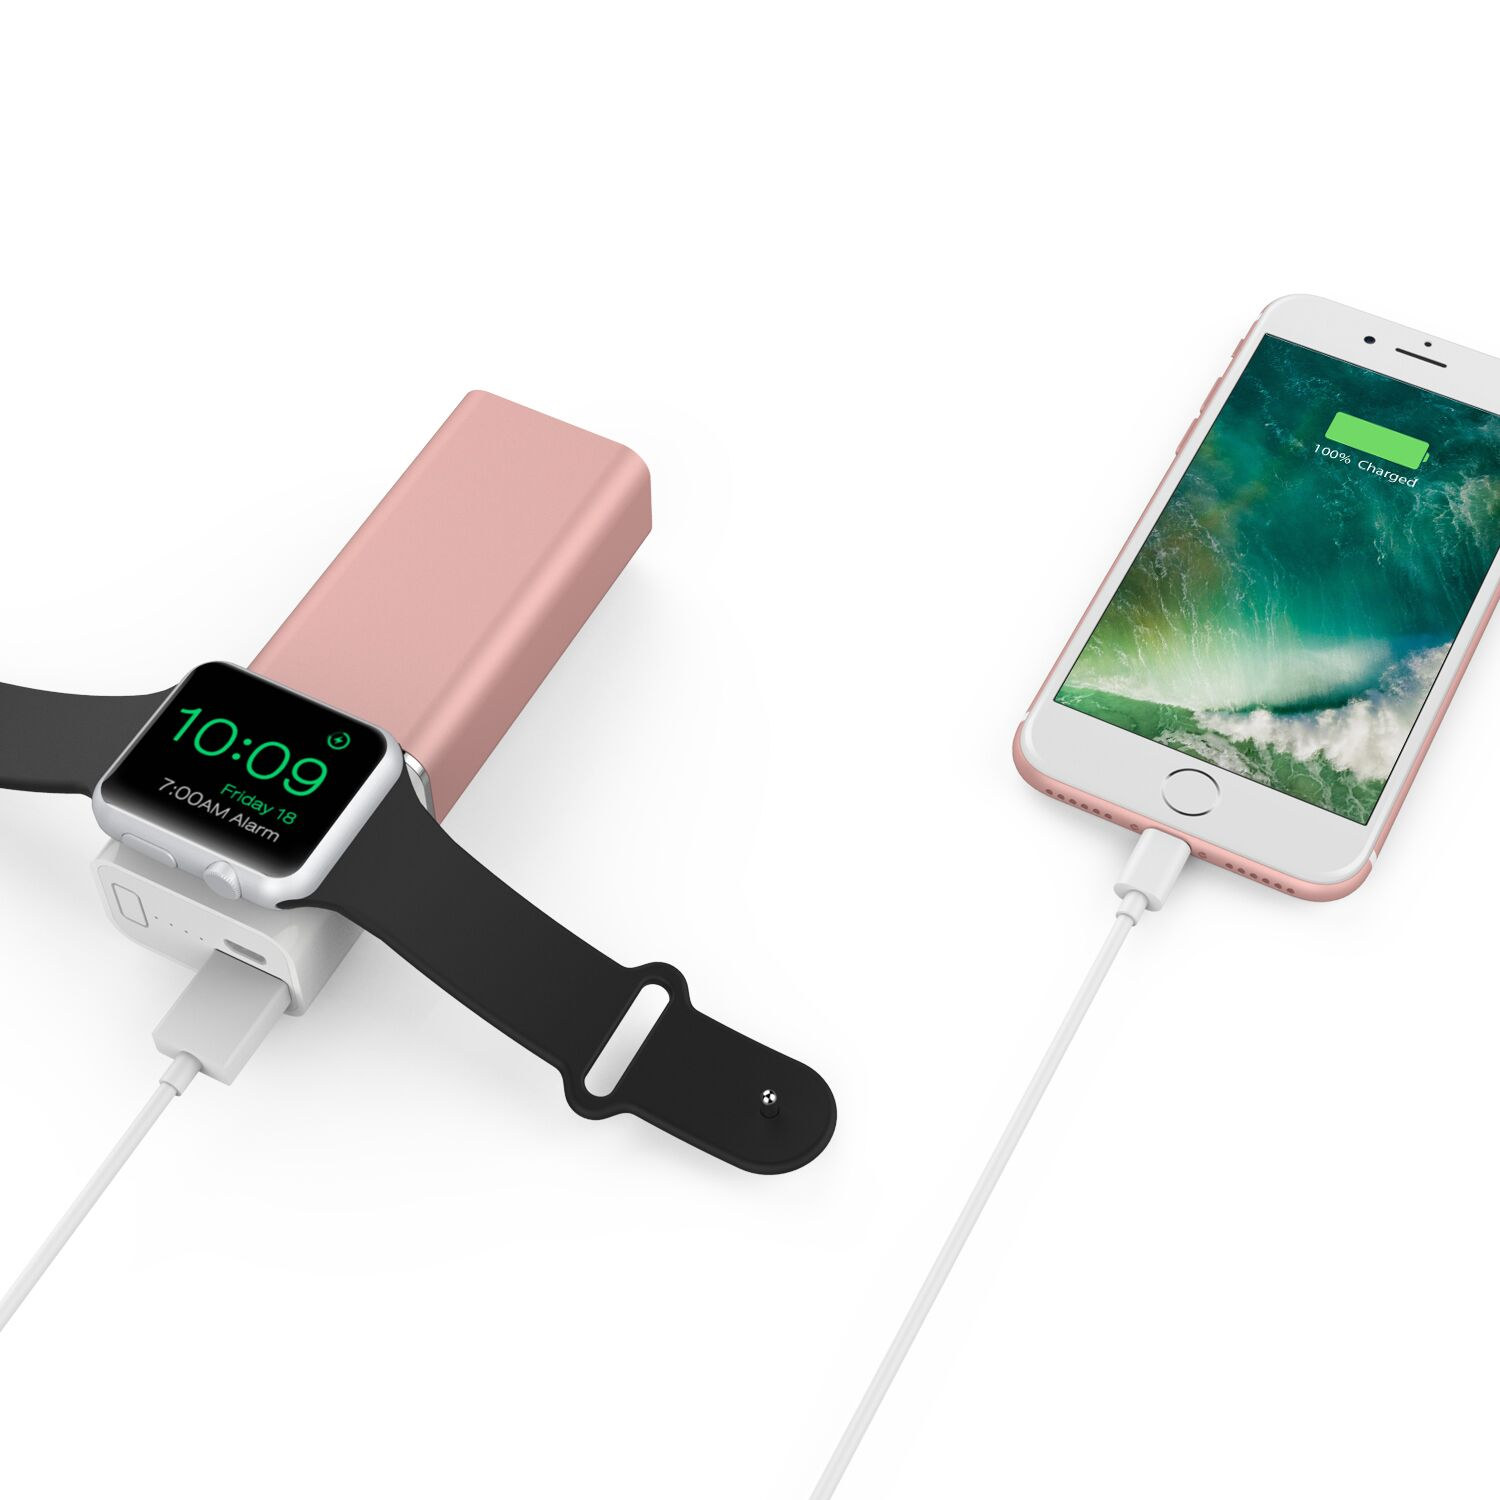 Element Works Dual USB Portable Charger And External Battery Pack for Apple Watch, iPhone, and Other Smartphones-Apple MFI Certified 0